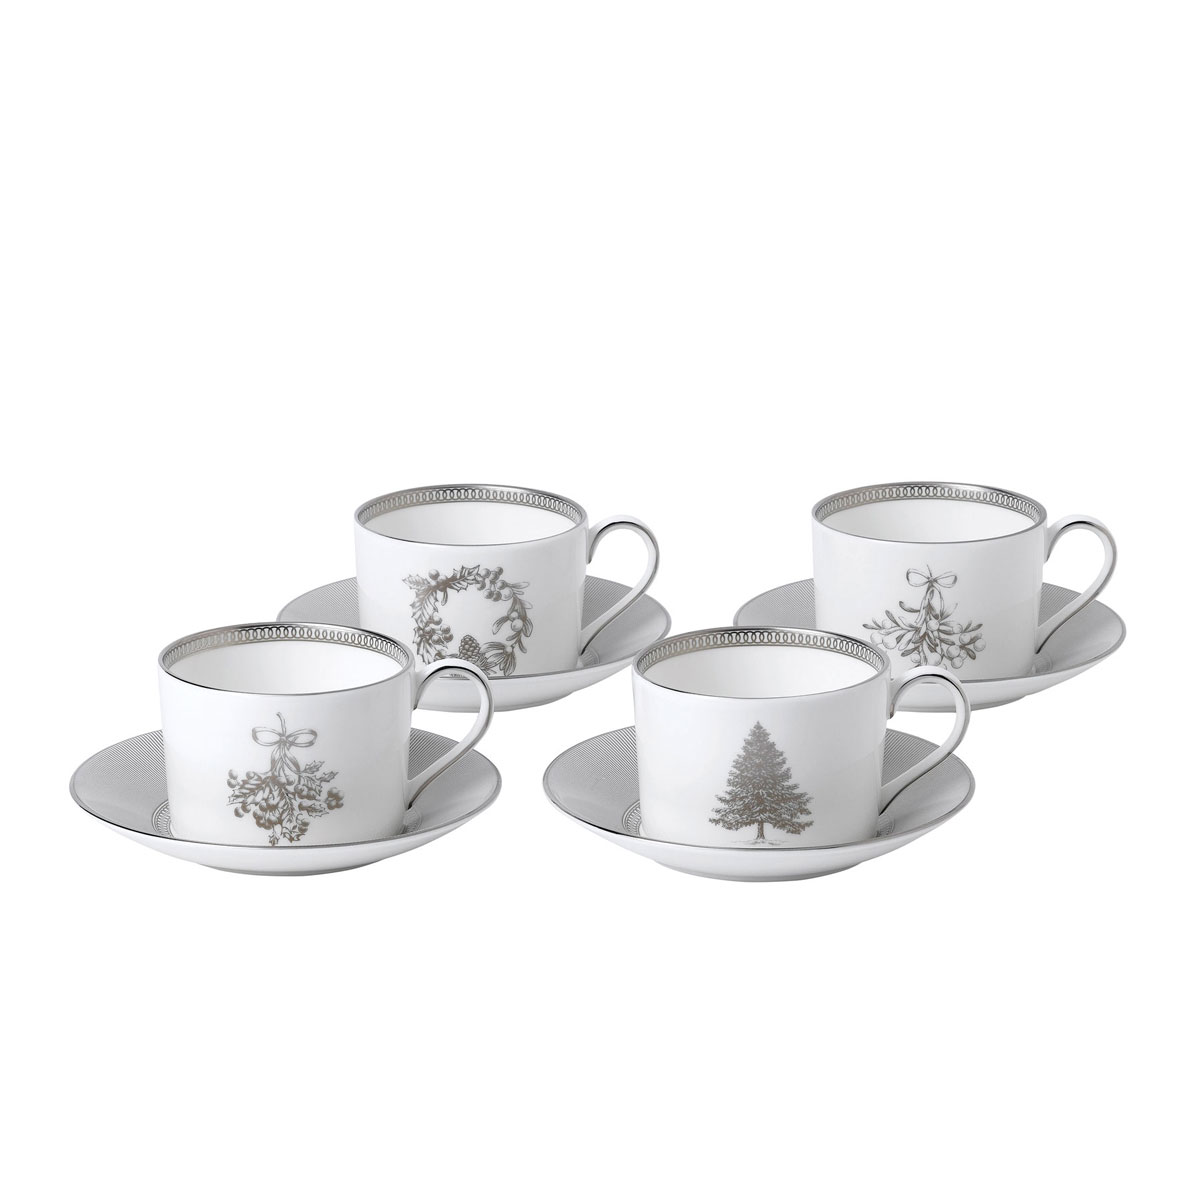 Wedgwood 2019 Winter White Teacup and Saucer Set of Four